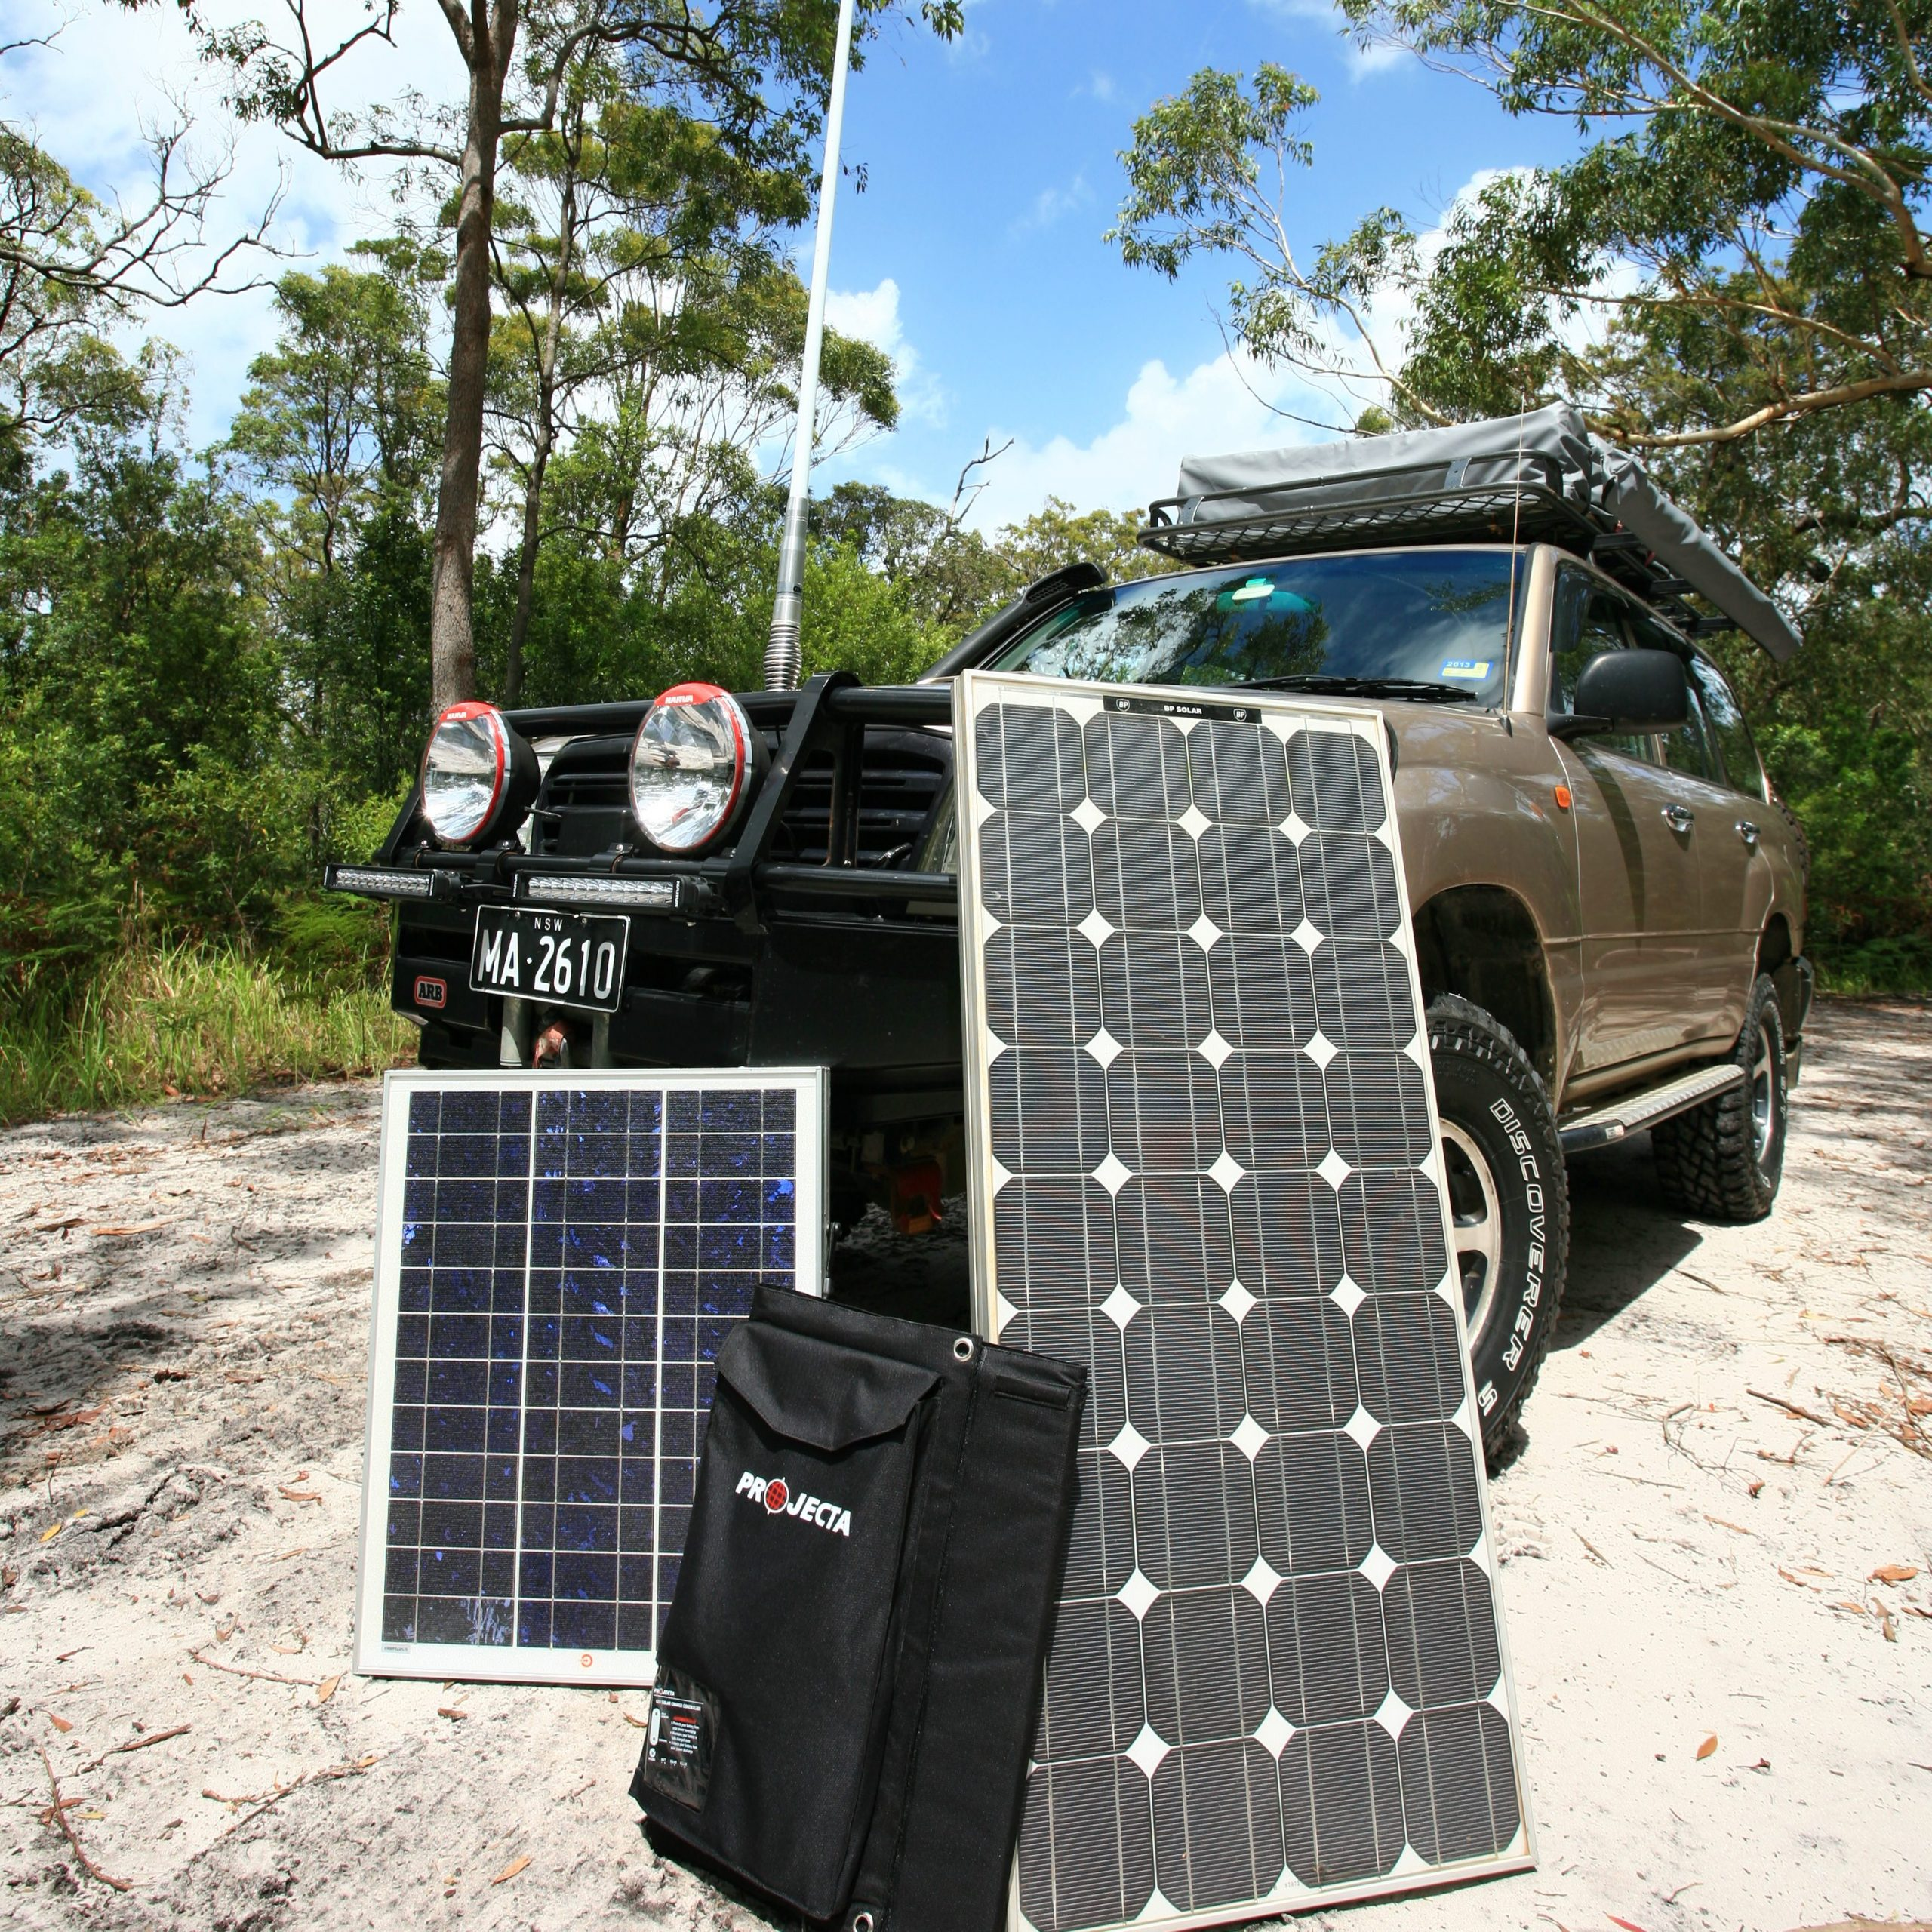 A variety of solar panel options